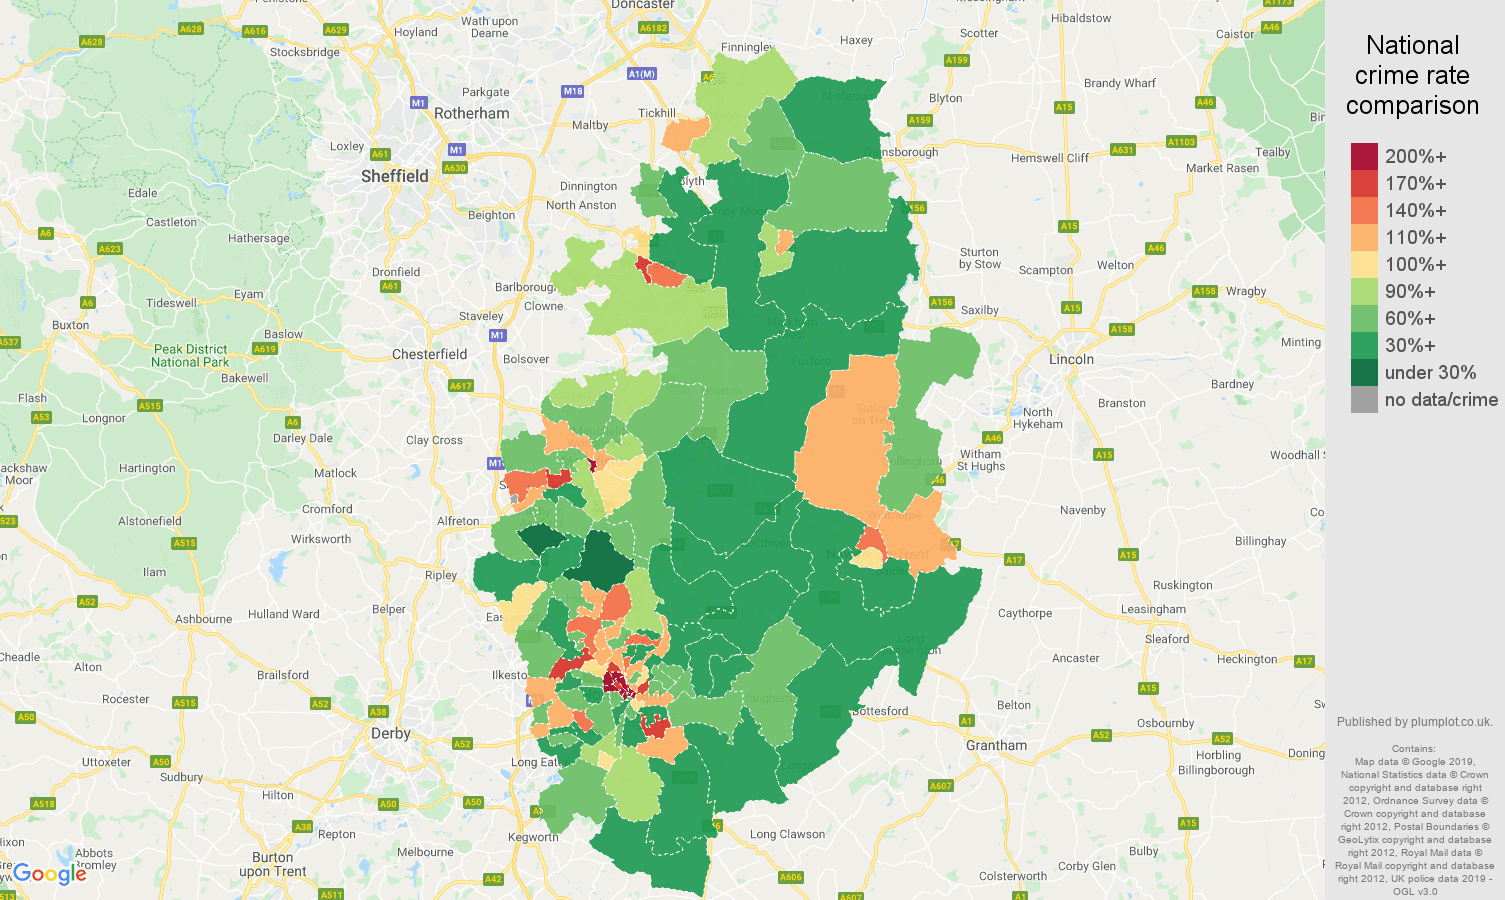 Nottinghamshire other theft crime rate comparison map